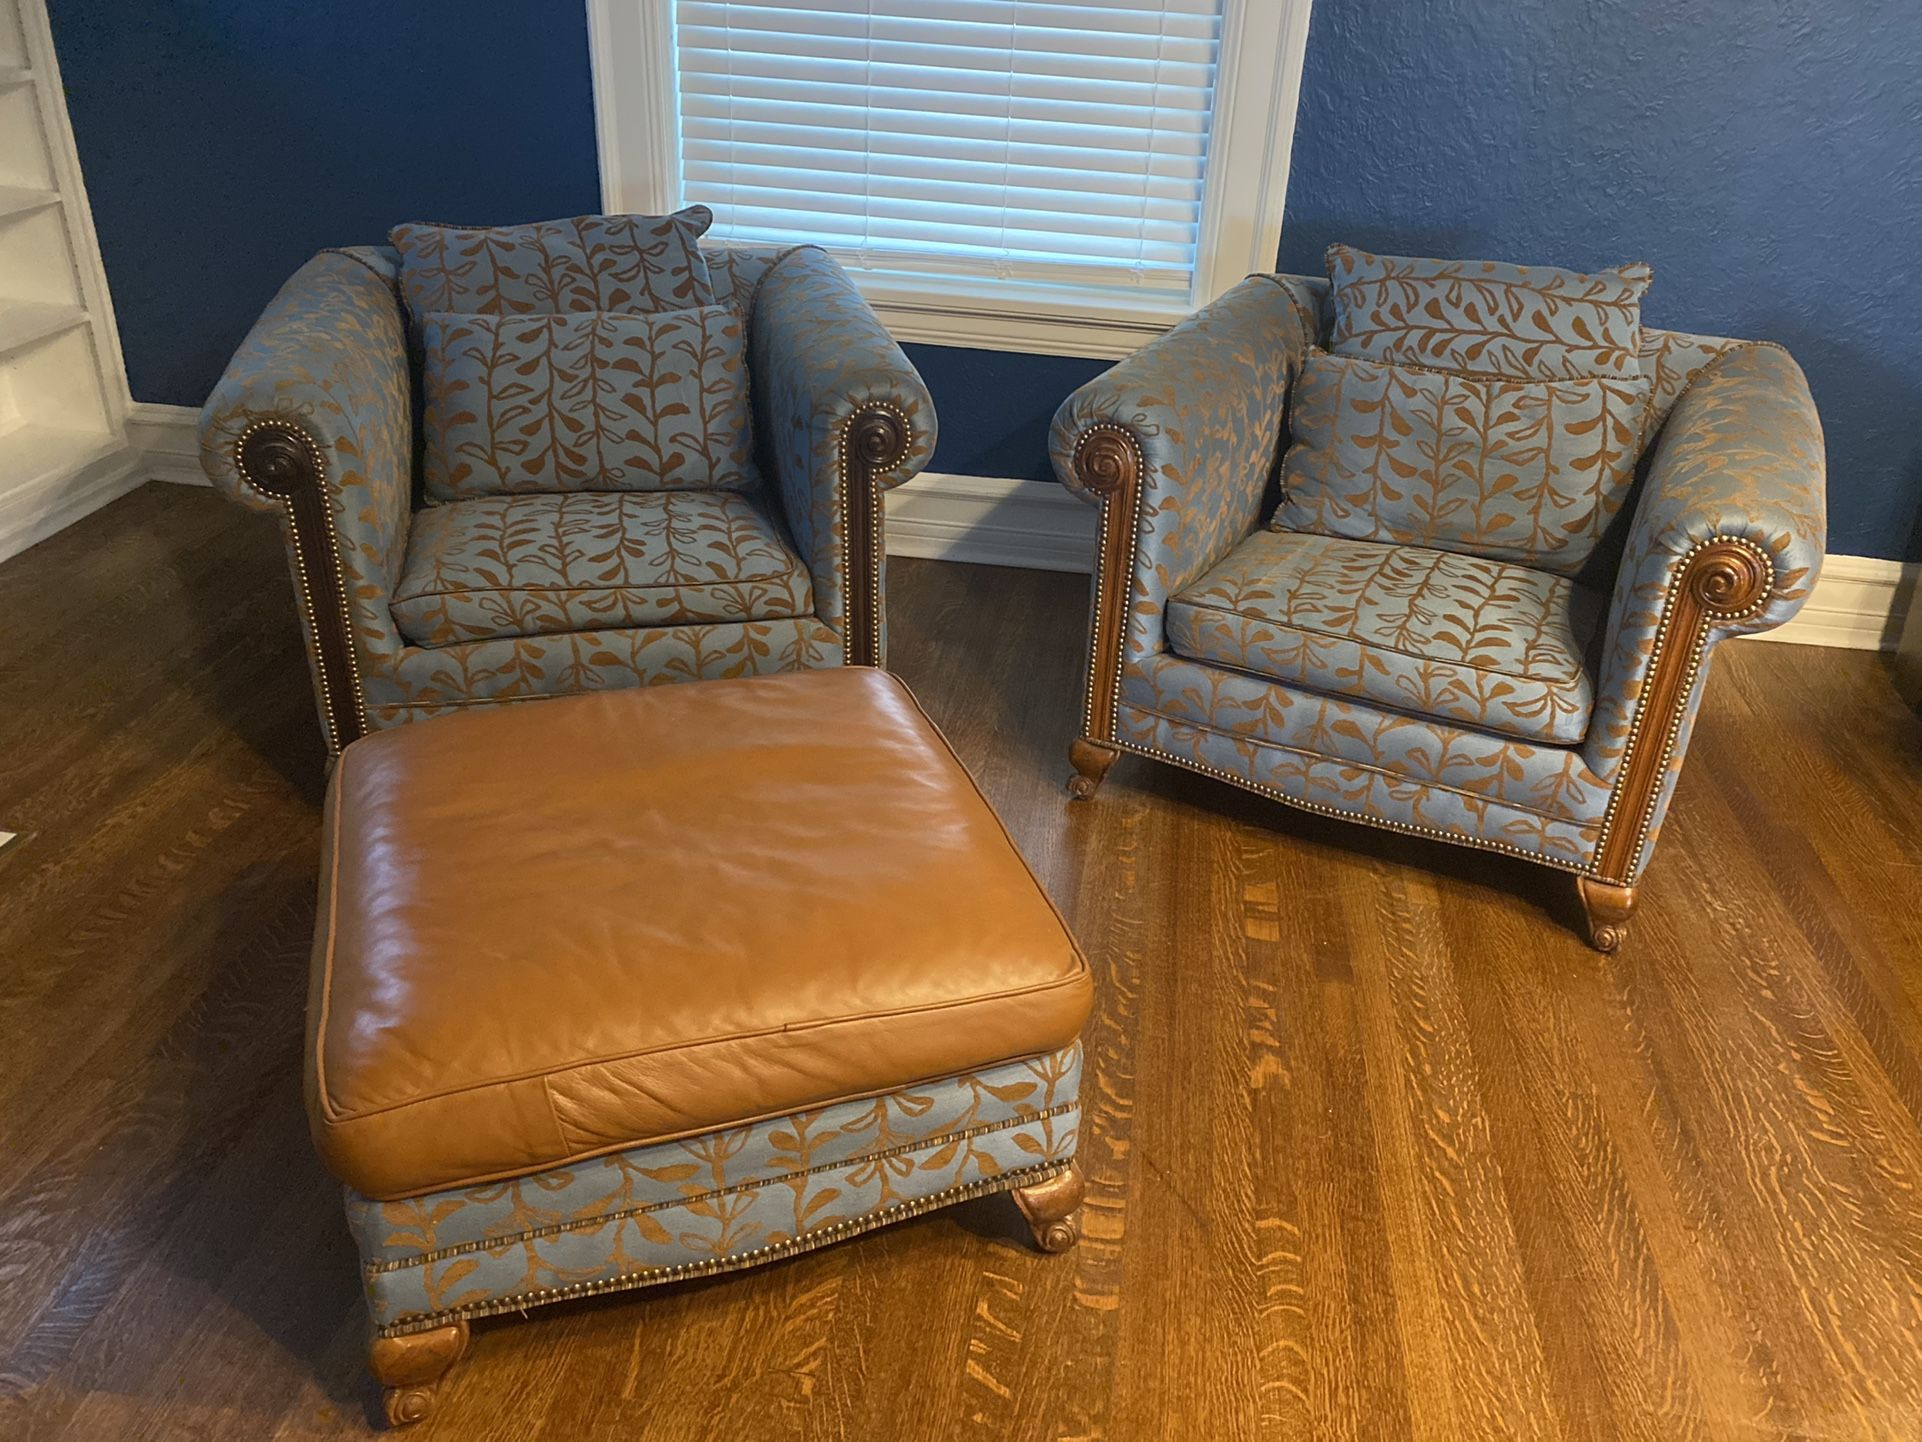 Upholstered Sofa Chairs/Arm Chairs And Ottoman